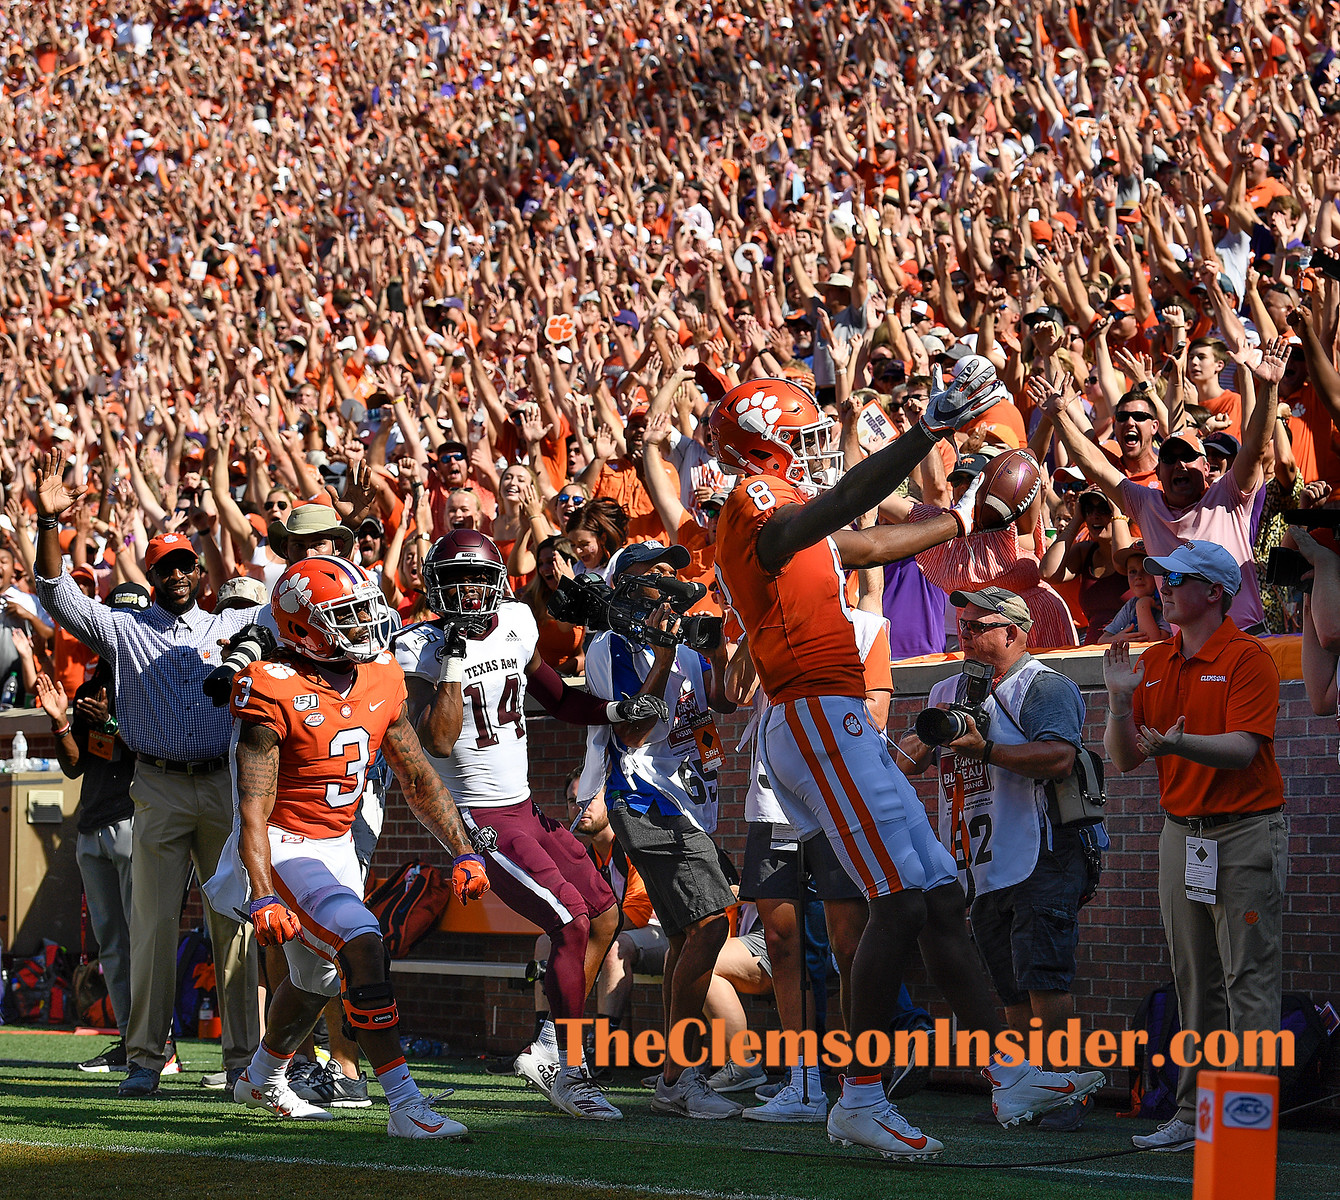 Clemson wide receiver Justyn Ross (8) catches a TD against Texas A&M during the 2nd quarter Saturday, September 7, 2019 at Clemson's Memorial Stadium. Bart Boatwright/The Clemson Insider